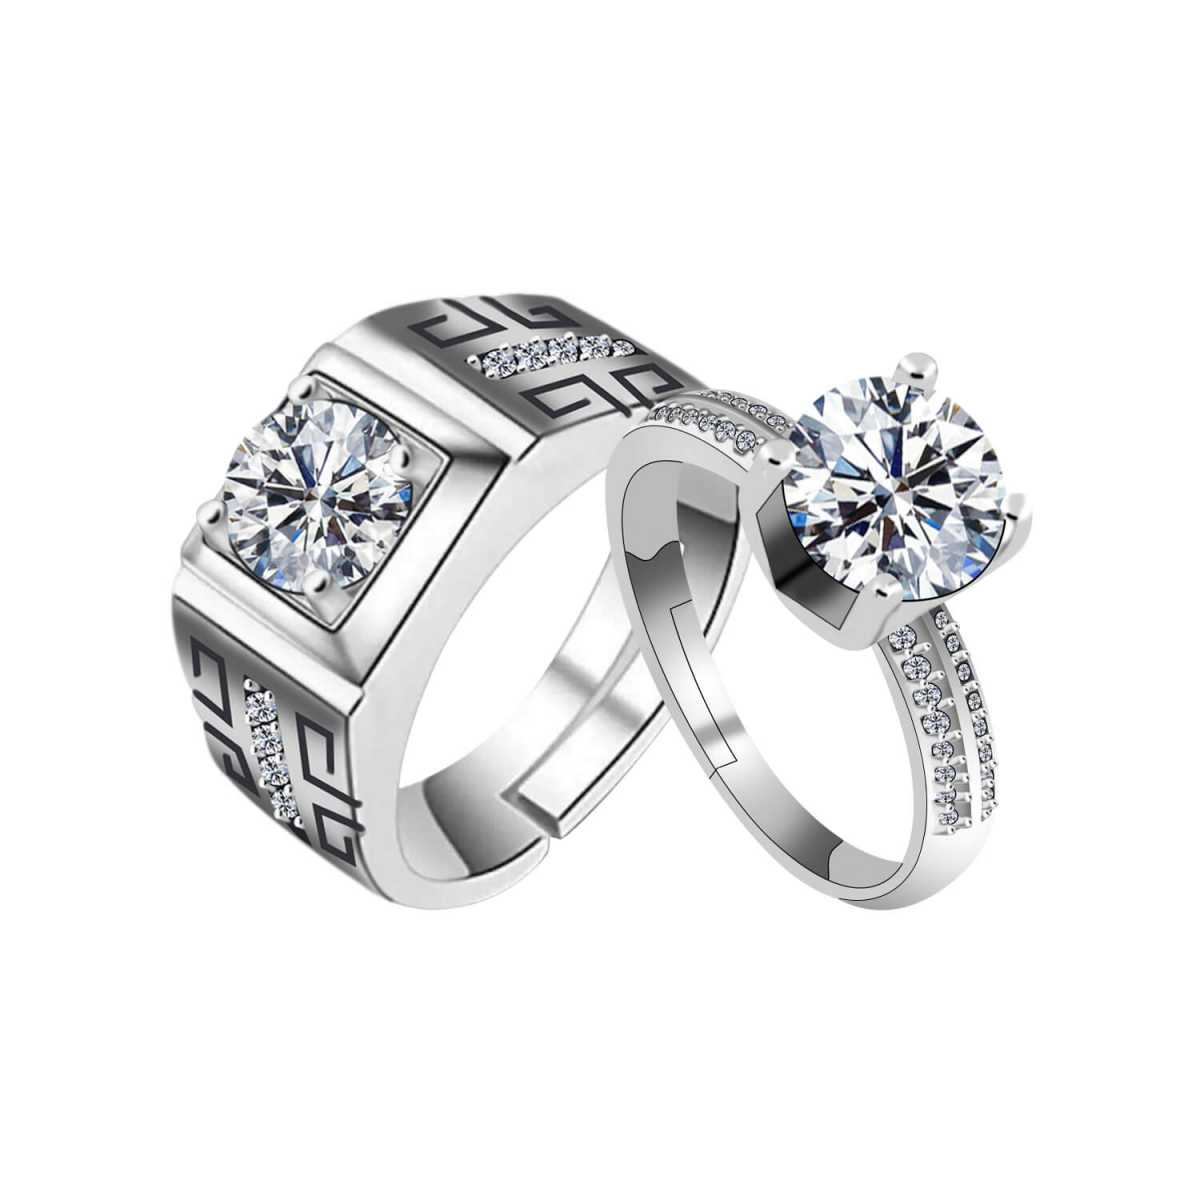 SILVERSHINE,silver plated with round crystal diamond and magnificent designer adjustable couple ring for men and women.